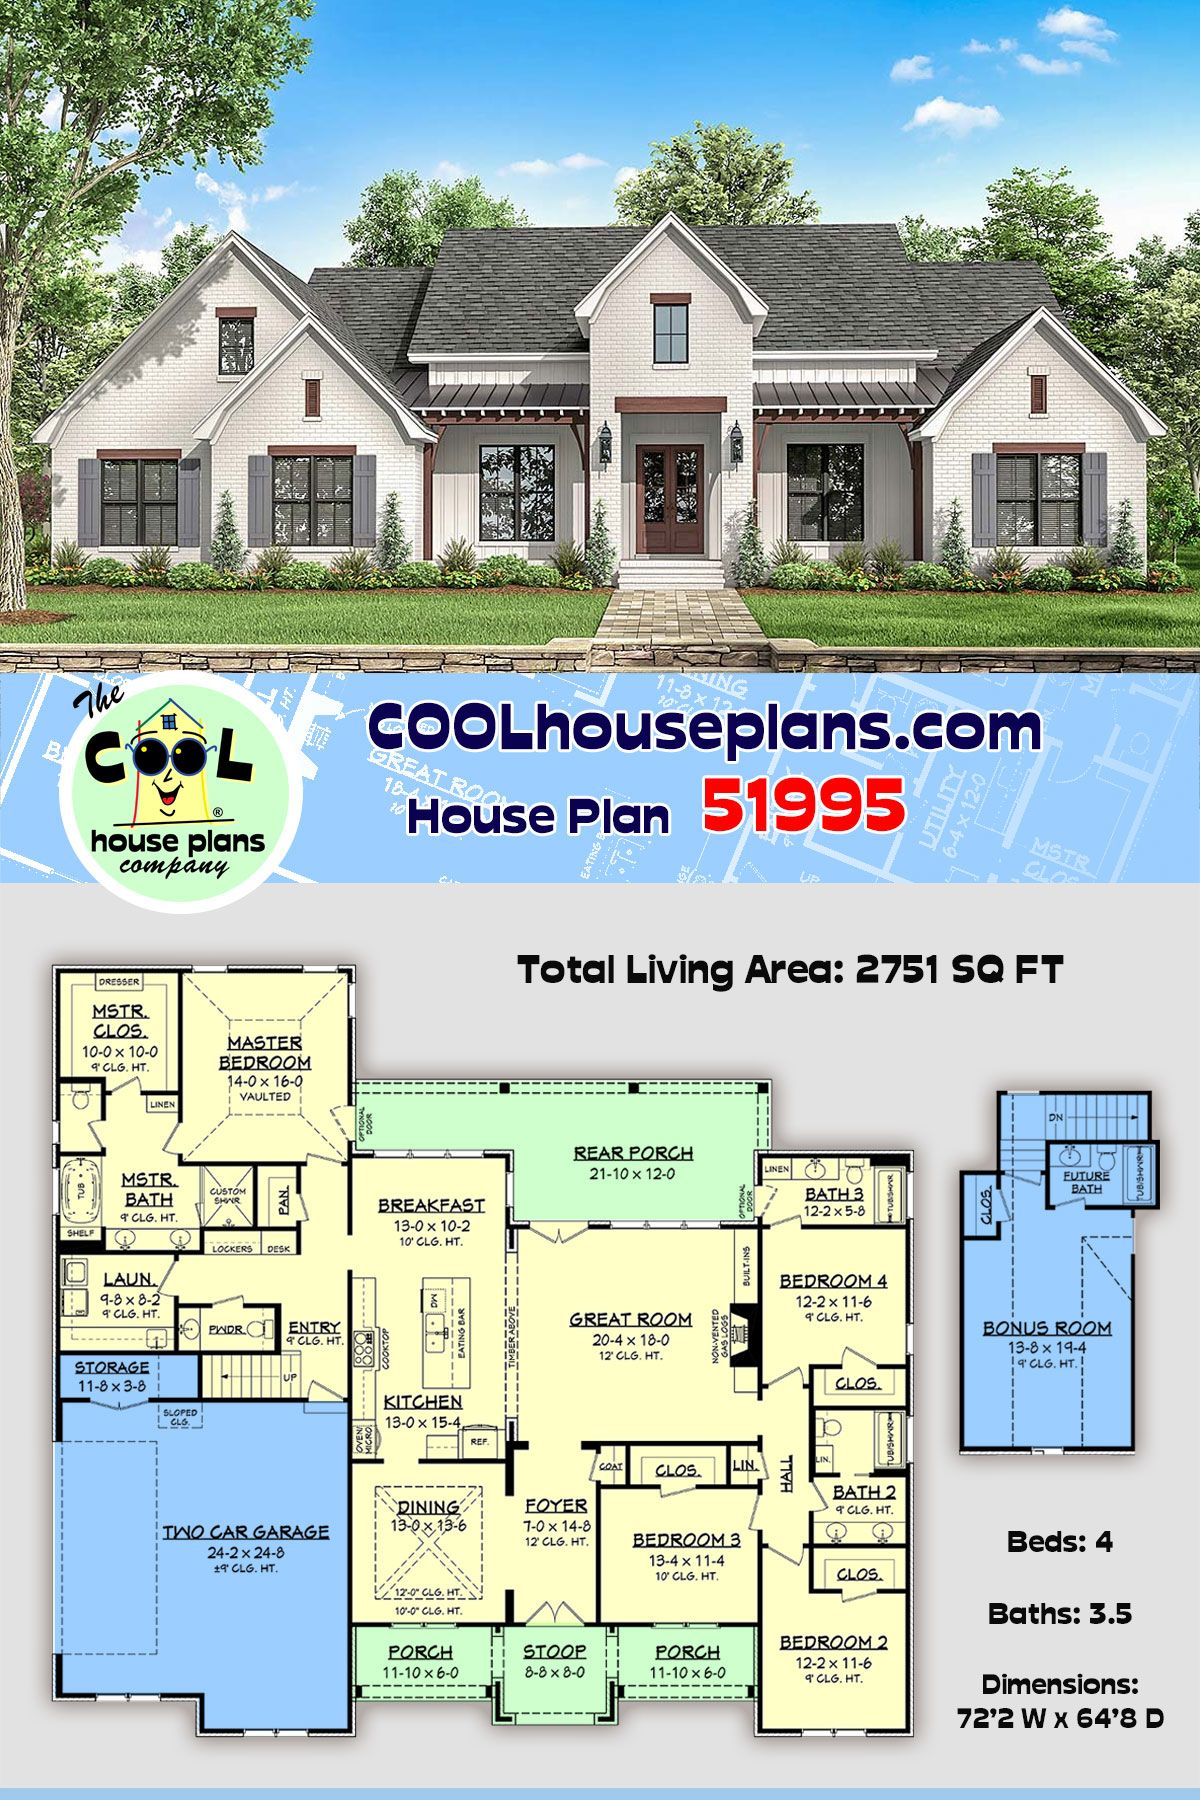 Traditional Style House Plan 51995 With 4 Bed 4 Bath 2 Car Garage In 2020 House Plans House Plans Farmhouse New House Plans